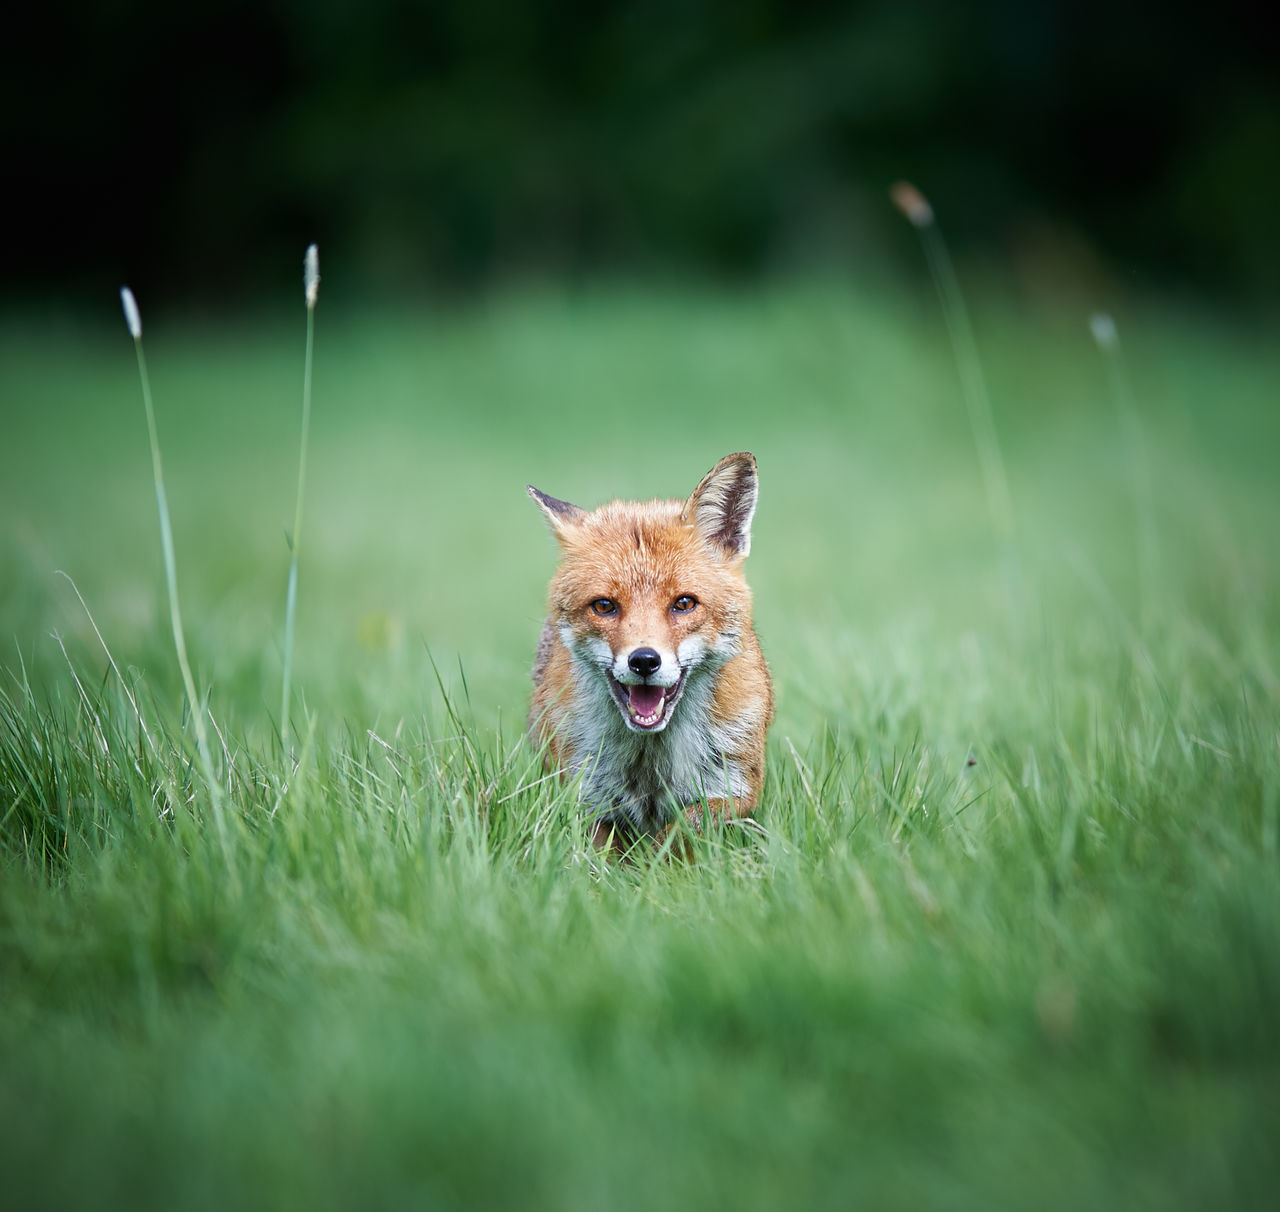 grass, one animal, animal themes, animals in the wild, selective focus, animal wildlife, fox, green color, nature, field, mammal, no people, outdoors, day, portrait, close-up